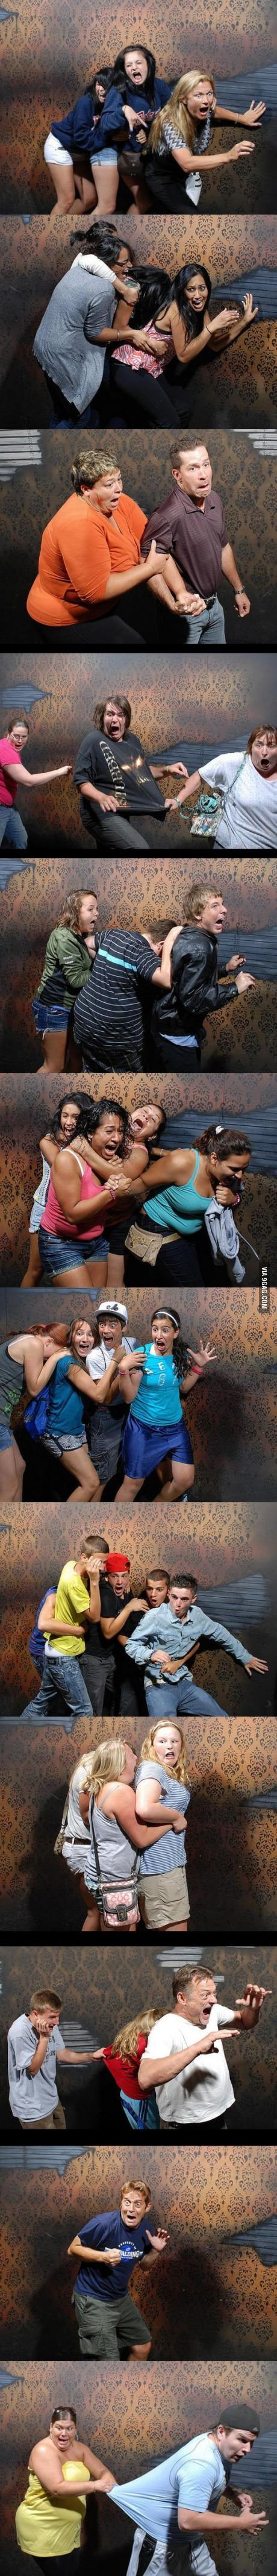 50 hilariously ridiculous haunted house reactions - Funny Haunted House Snapshots Http Geekstumbles Com Funny Funny